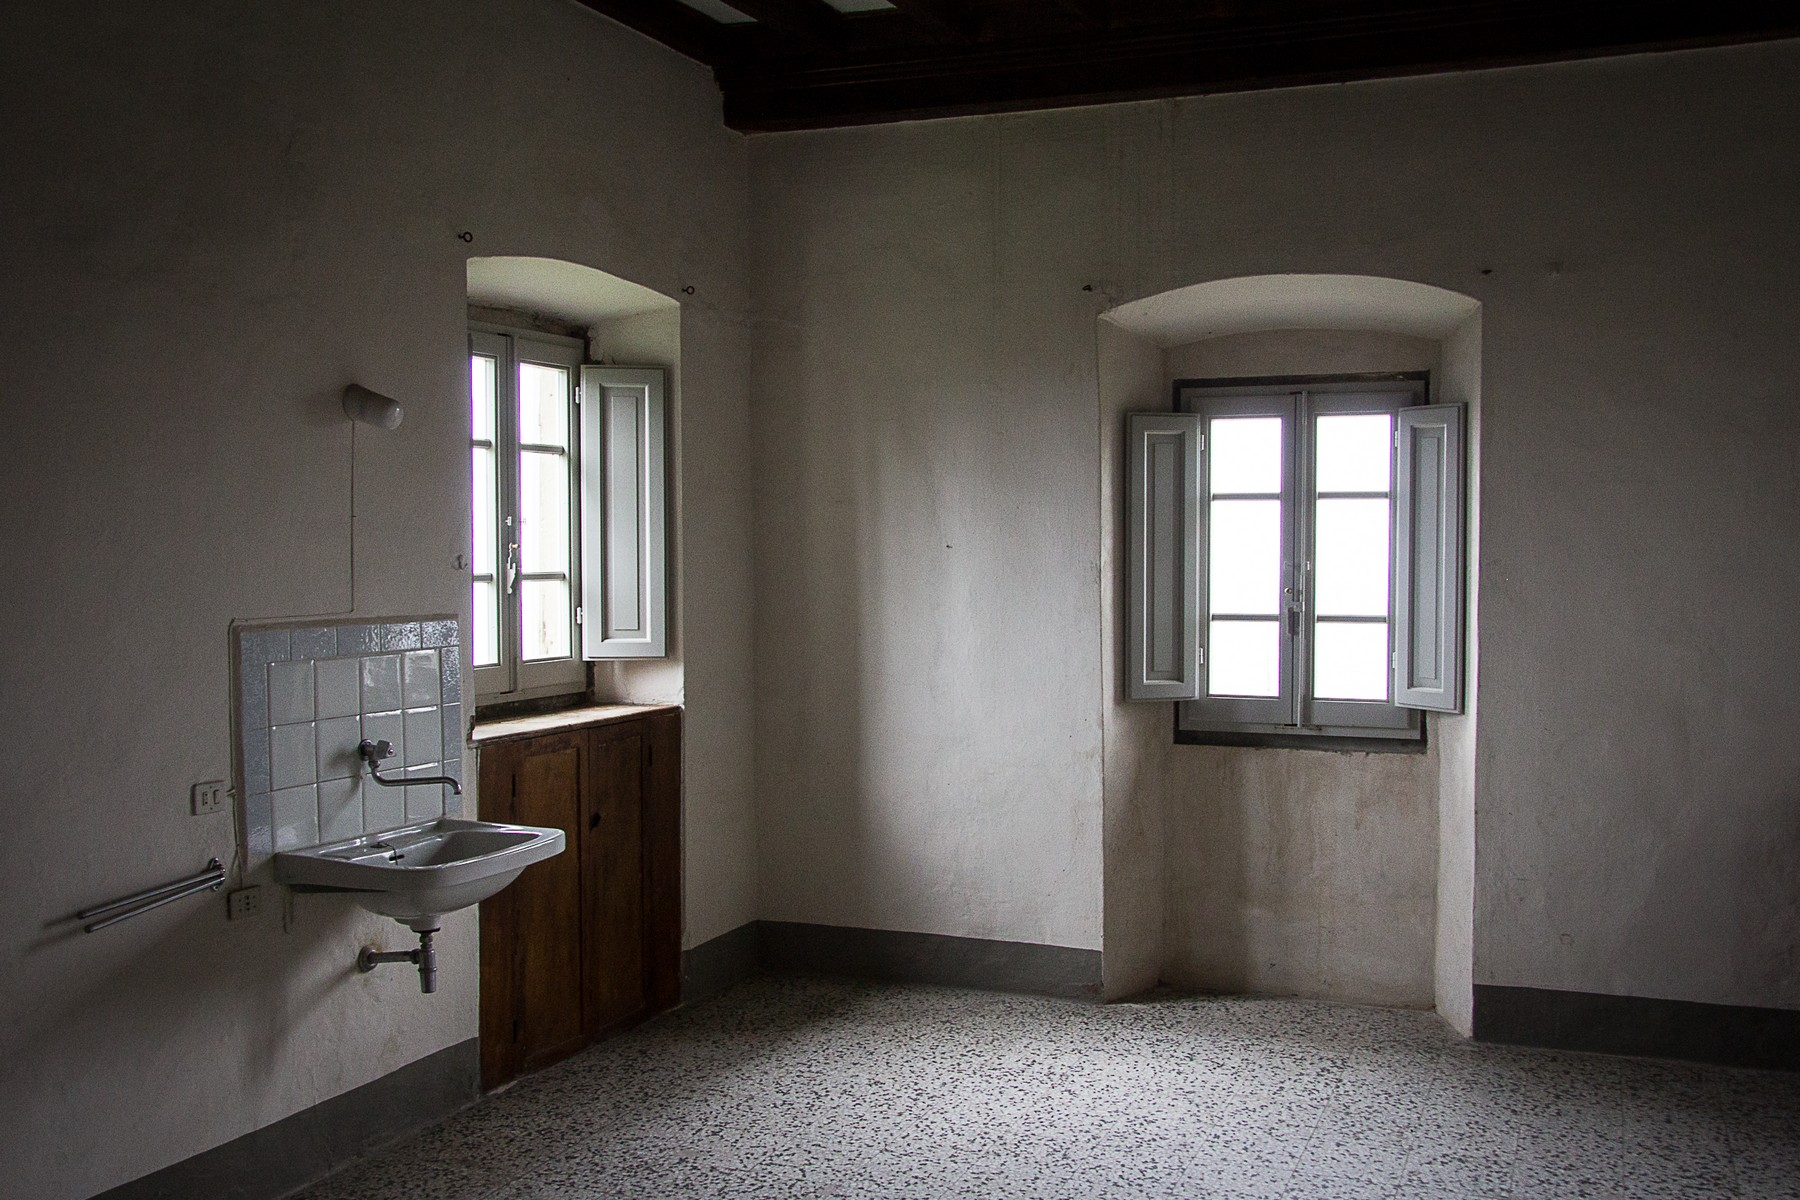 Additional photo for property listing at Outstanding historic convent with lands Pistoia Pistoia, Pistoia 51100 Italie